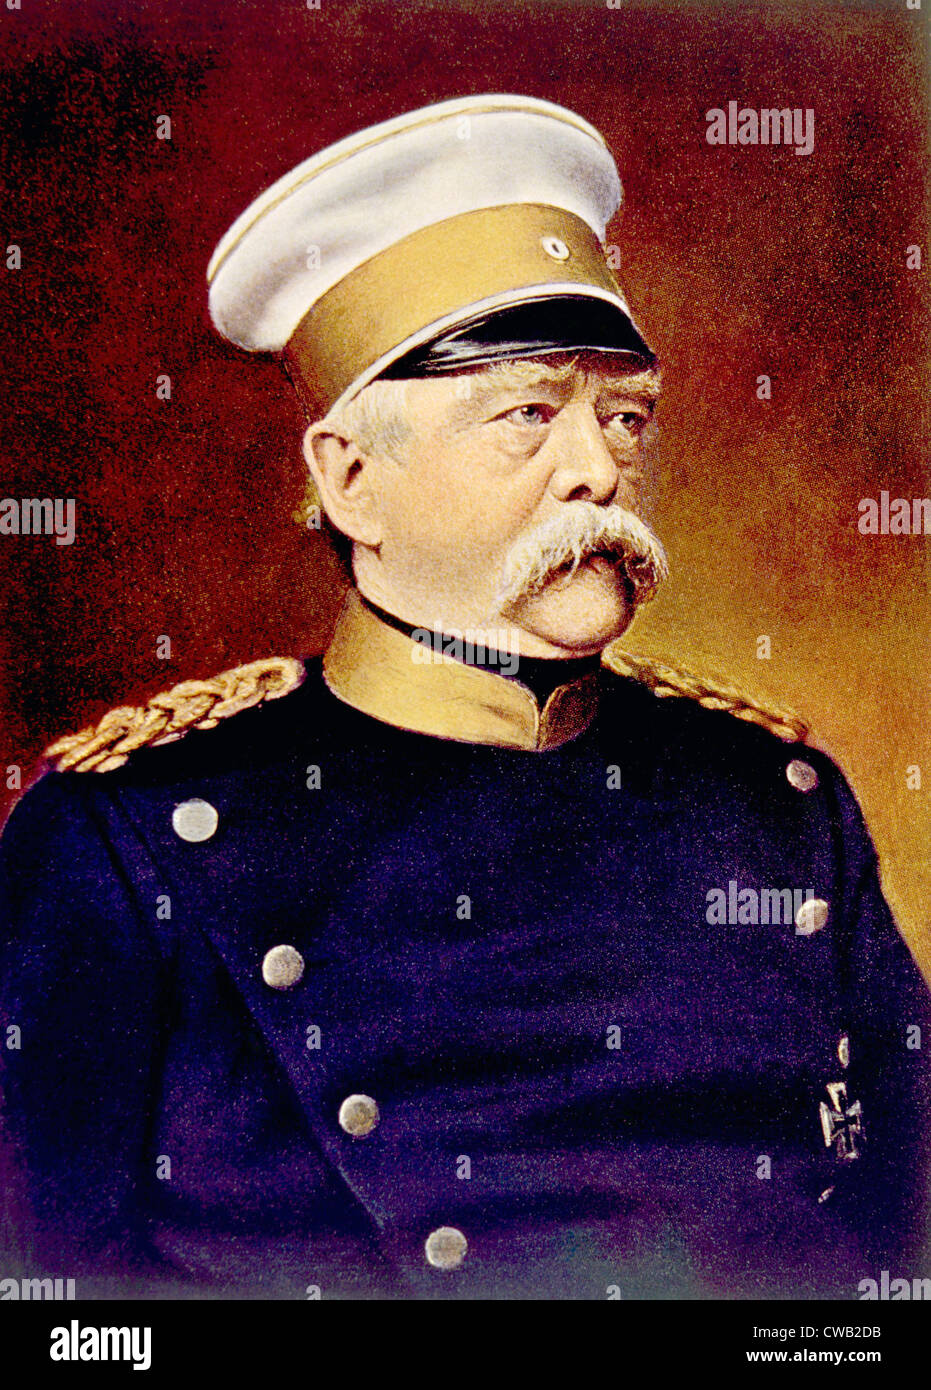 Otto von Bismarck (1815-1898), Chancellor of Germany, known as the Iron Chancellor - Stock Image